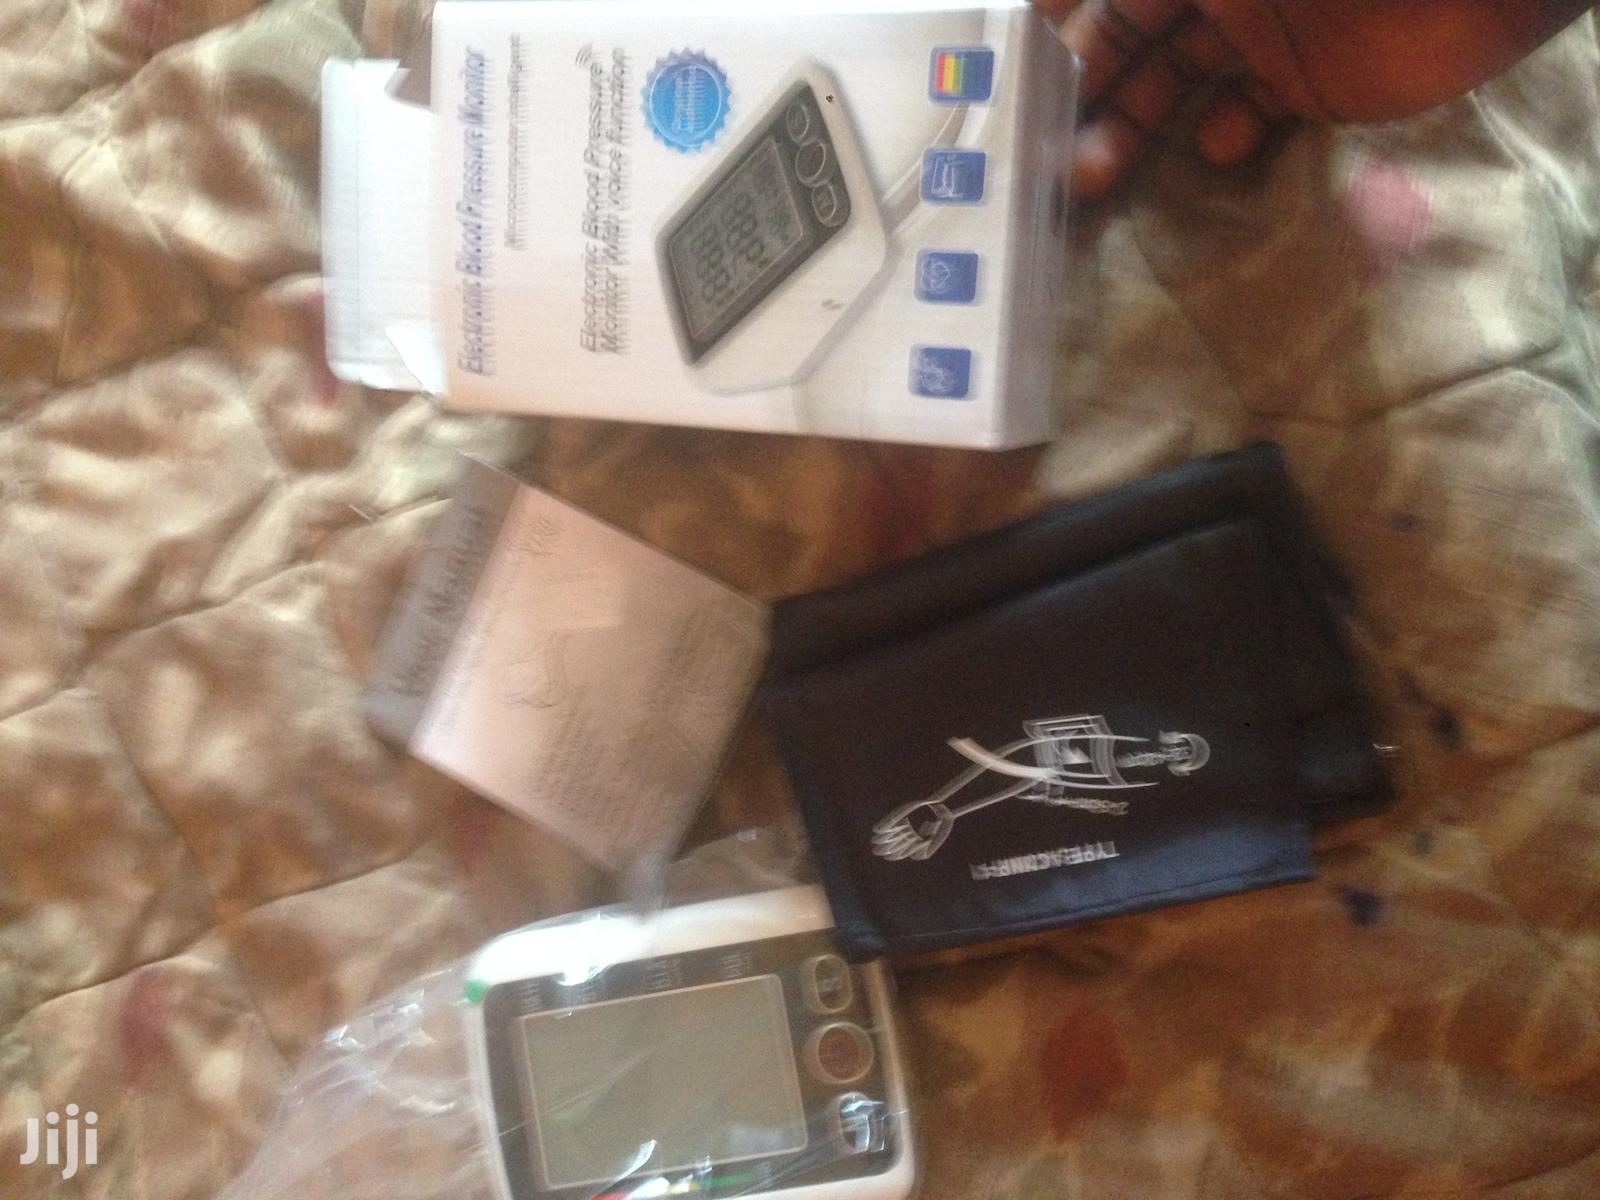 Blood Pressure Monitor | Tools & Accessories for sale in Accra Metropolitan, Greater Accra, Ghana